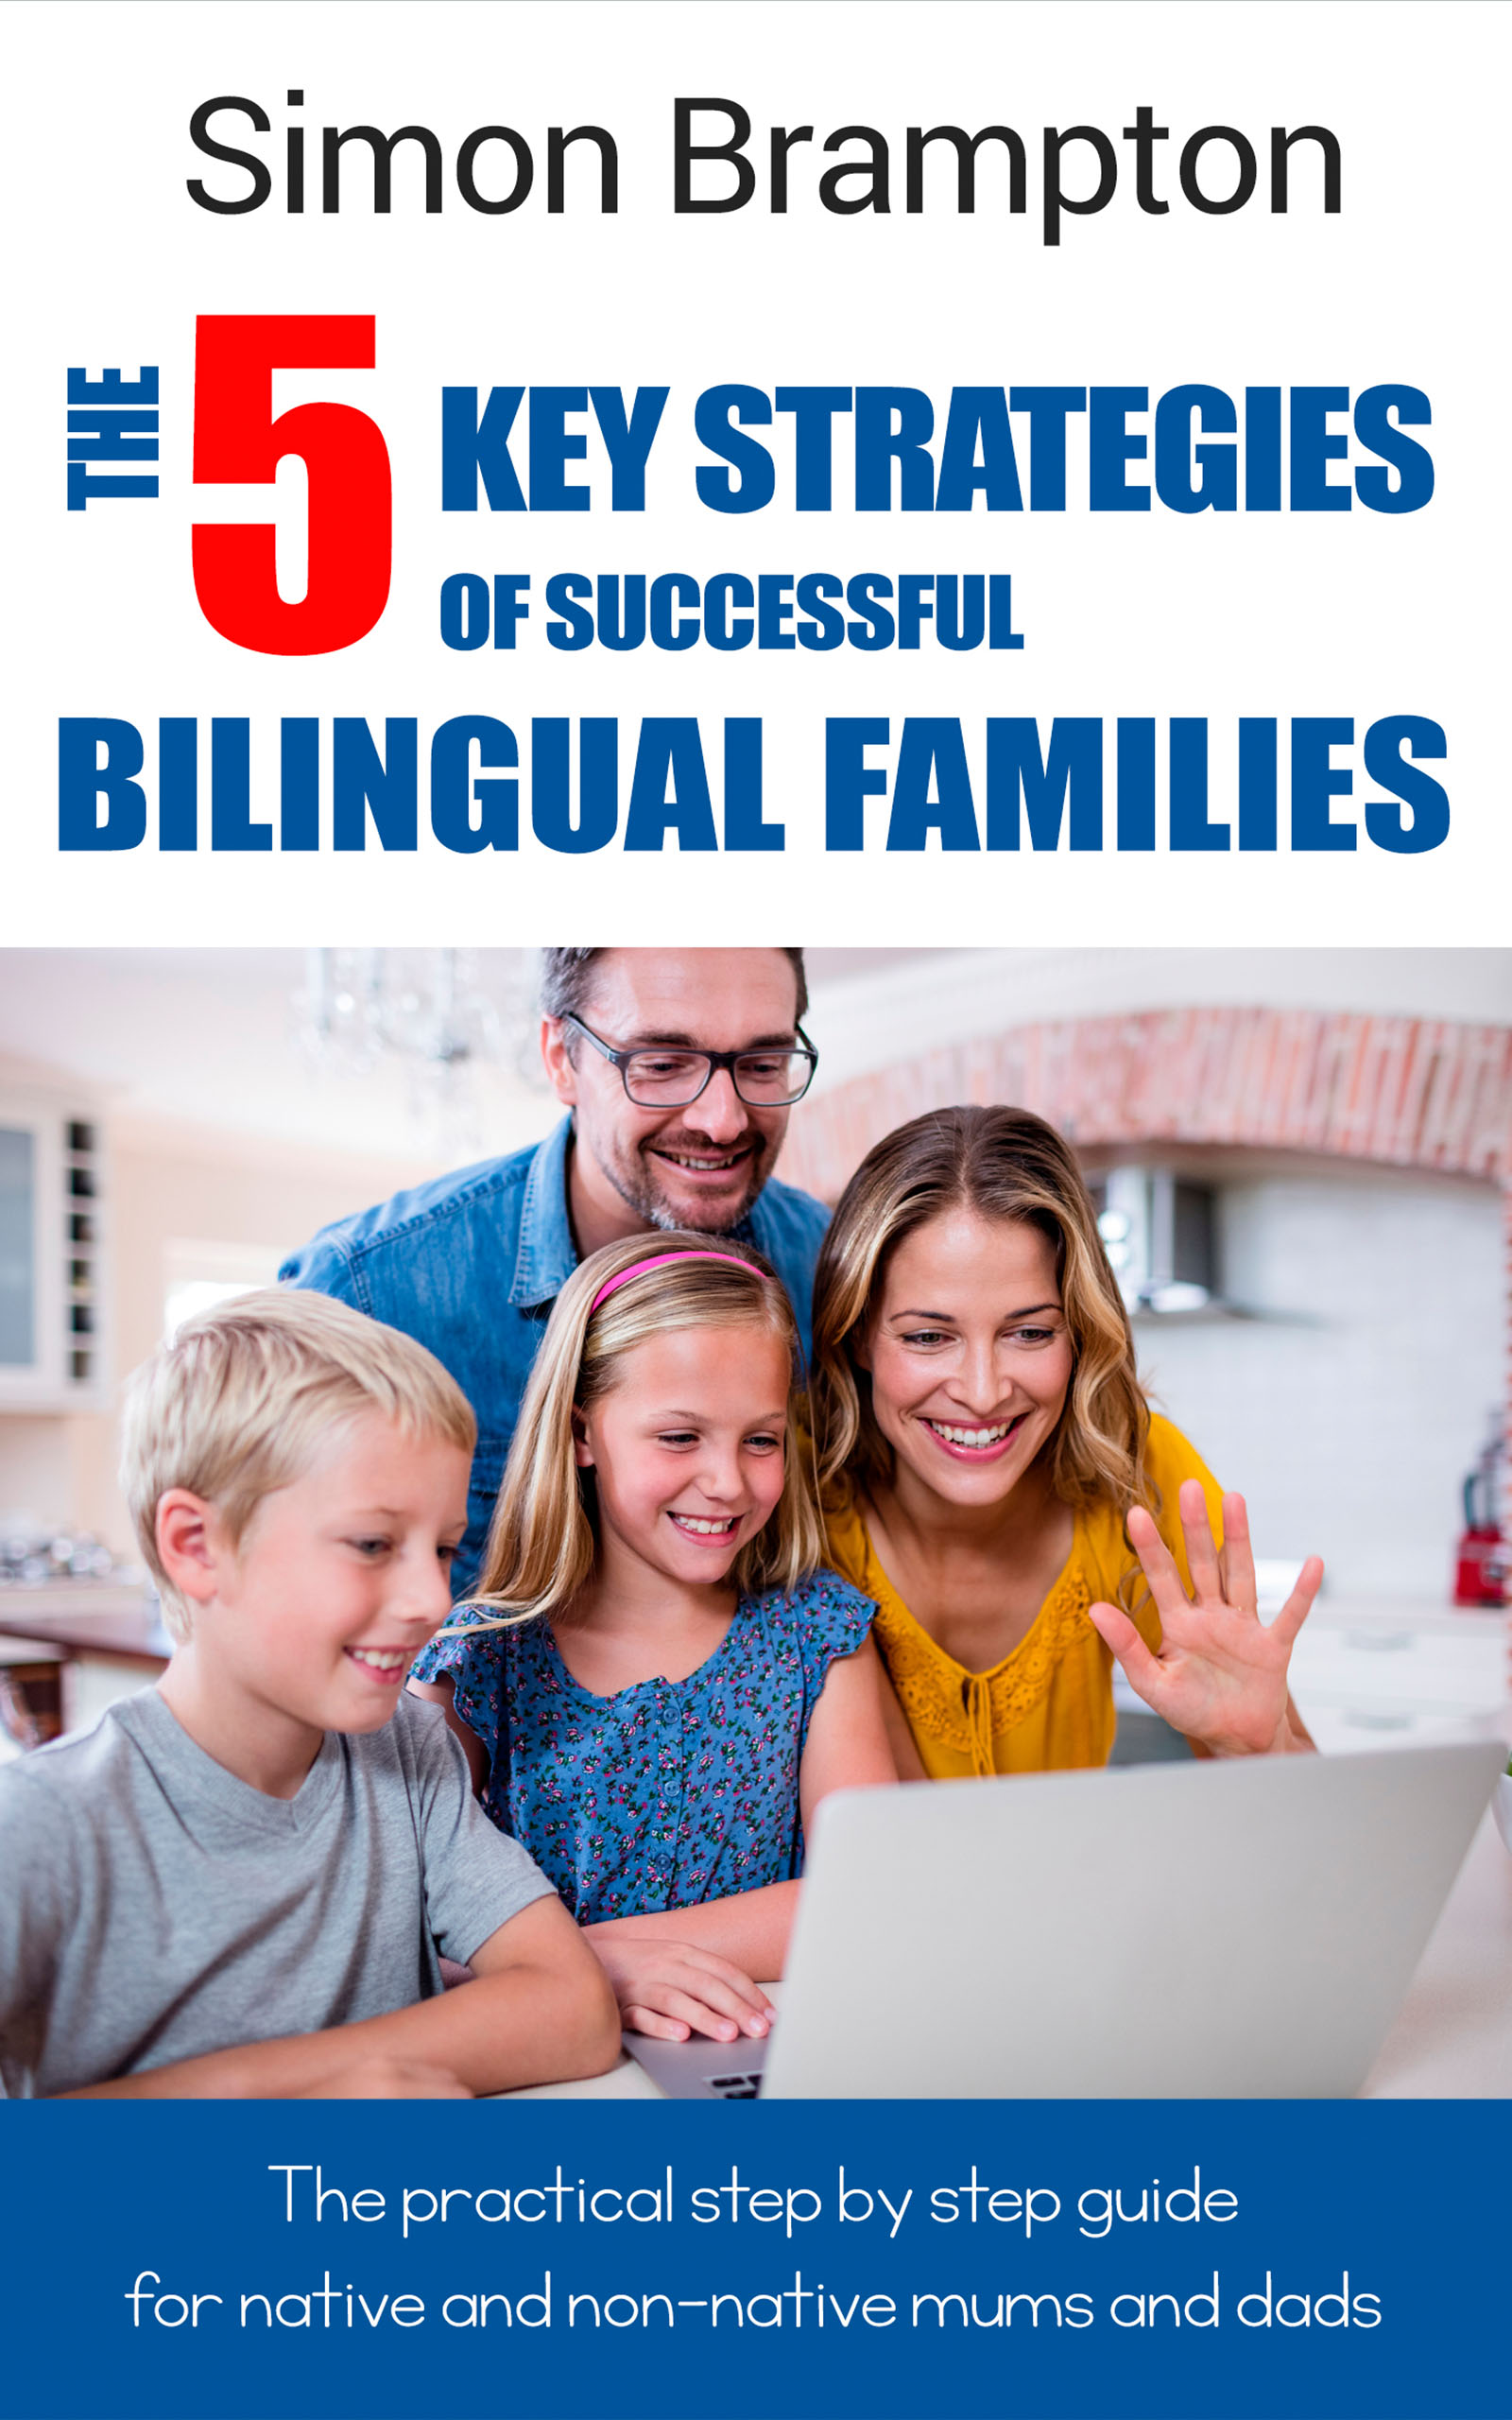 The 5 key strategies of successful bilingual families, by Simon Brampton